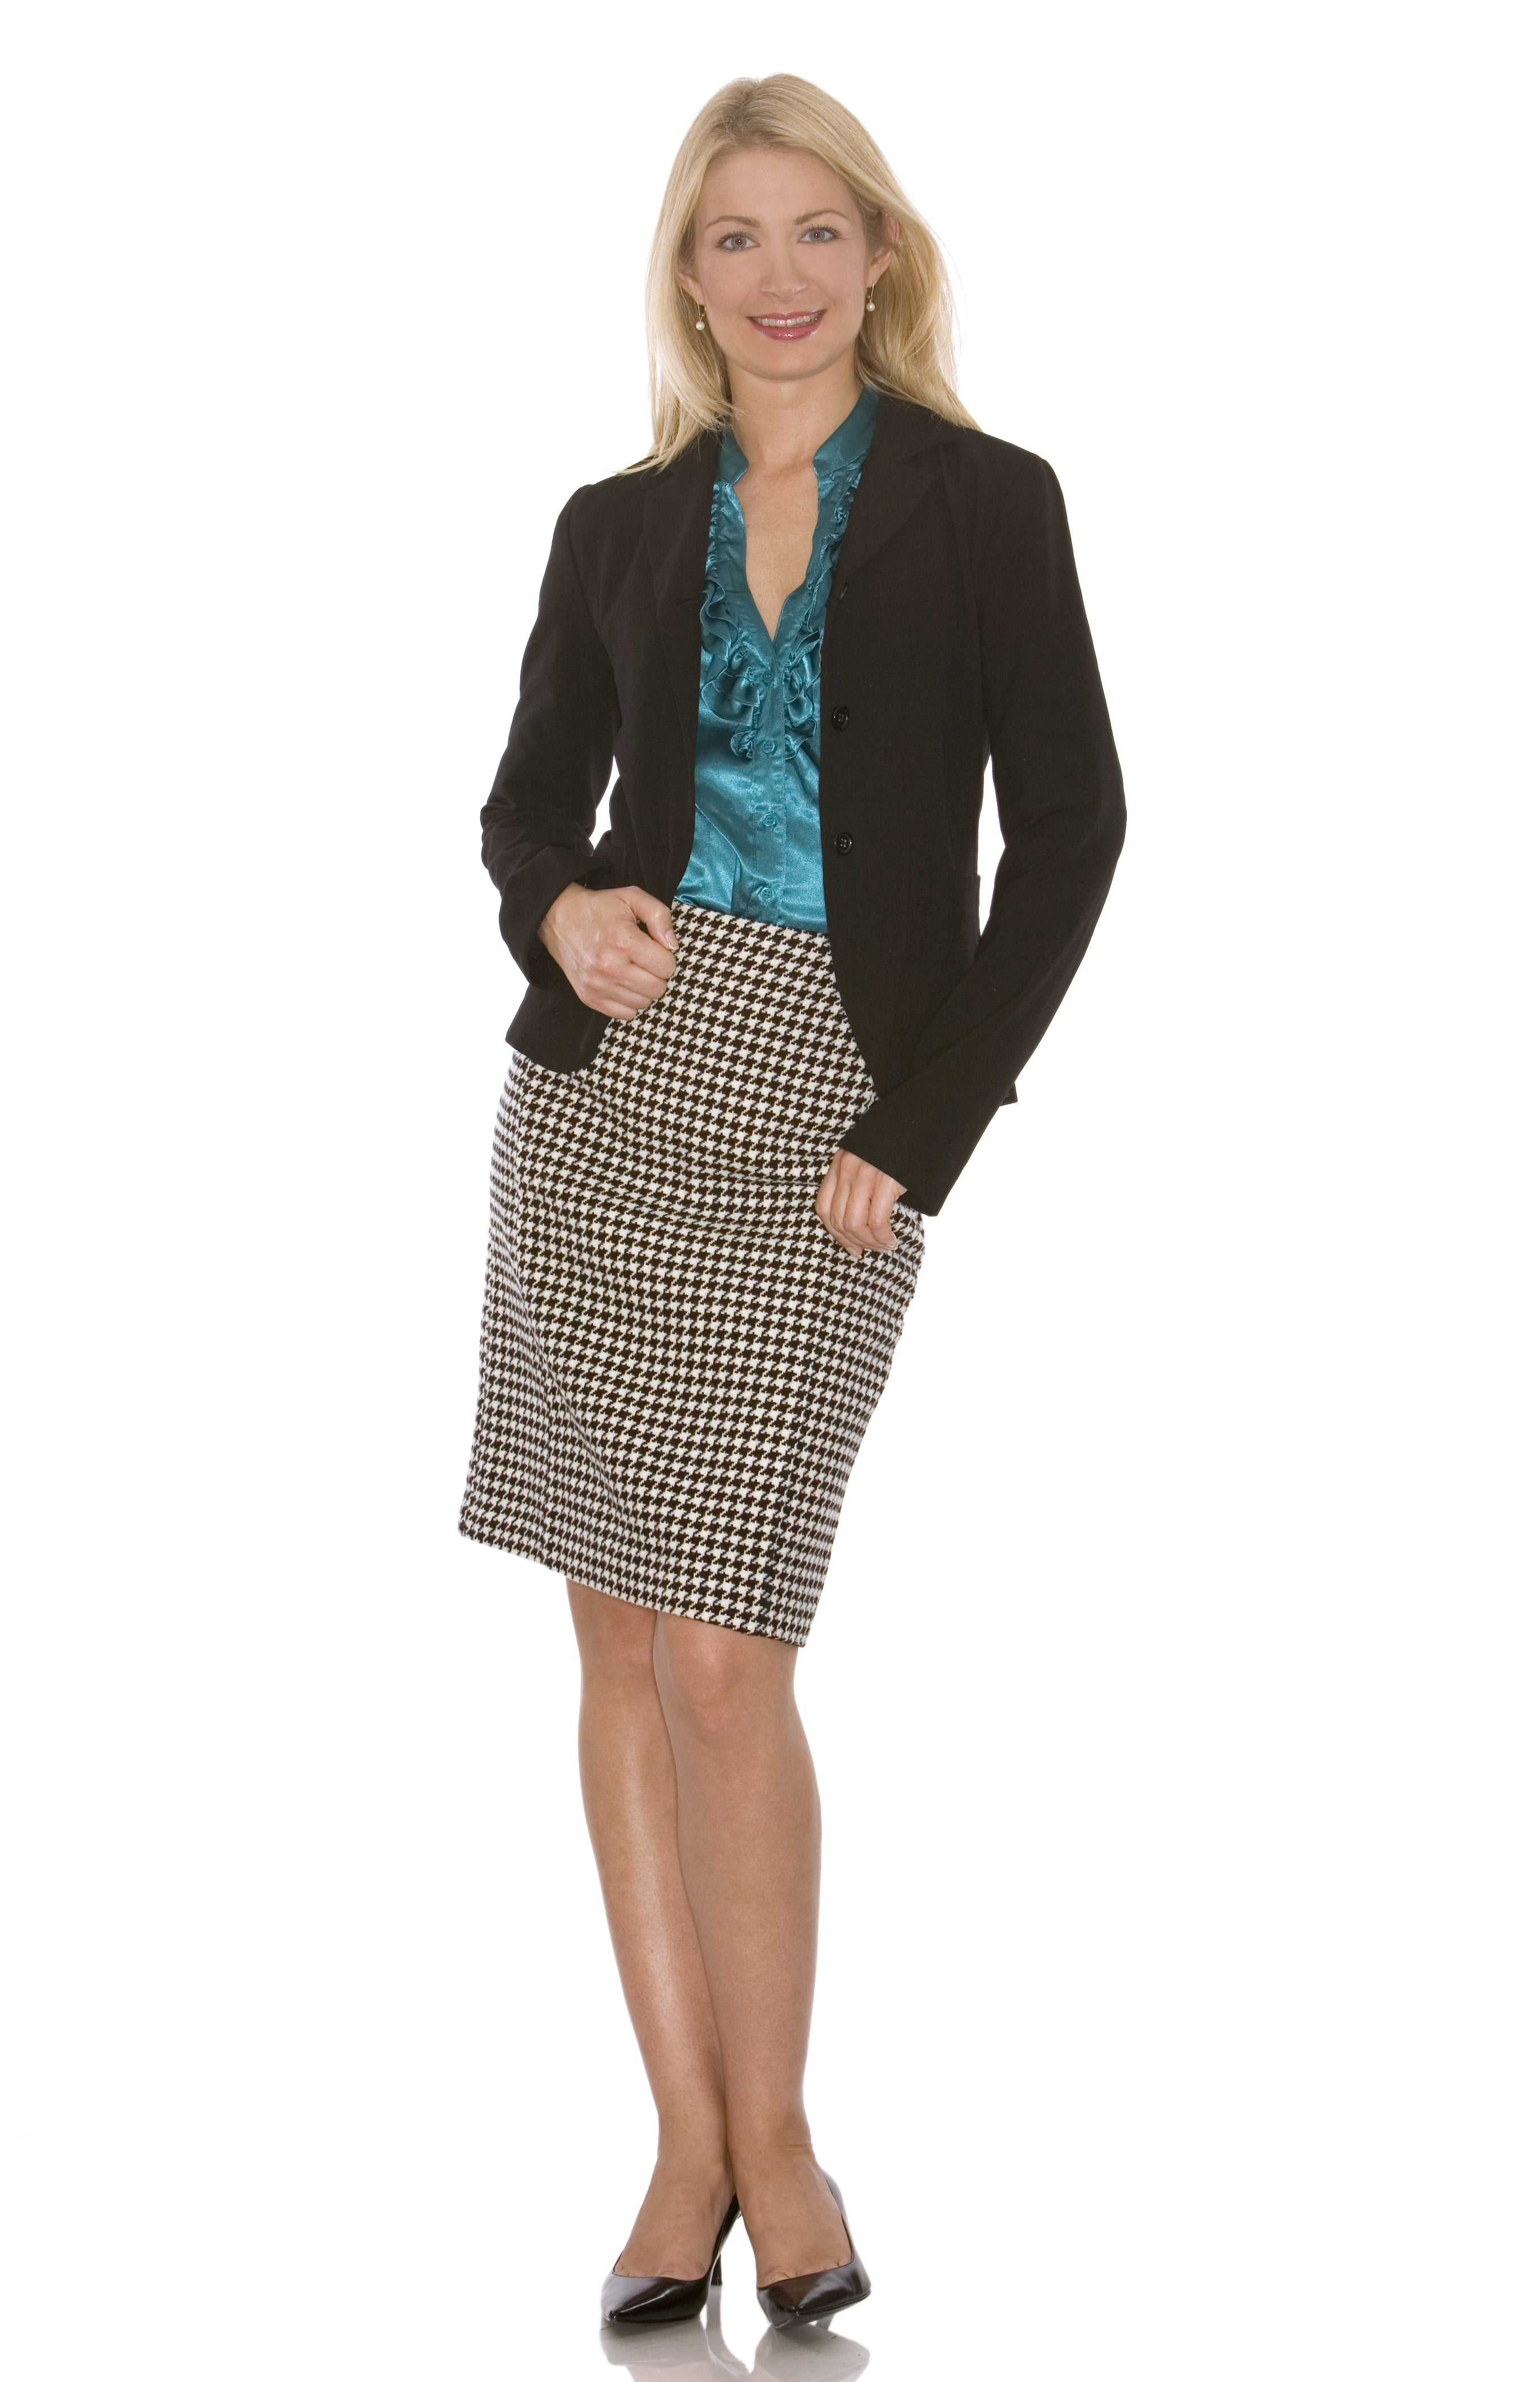 Woman with professional attire